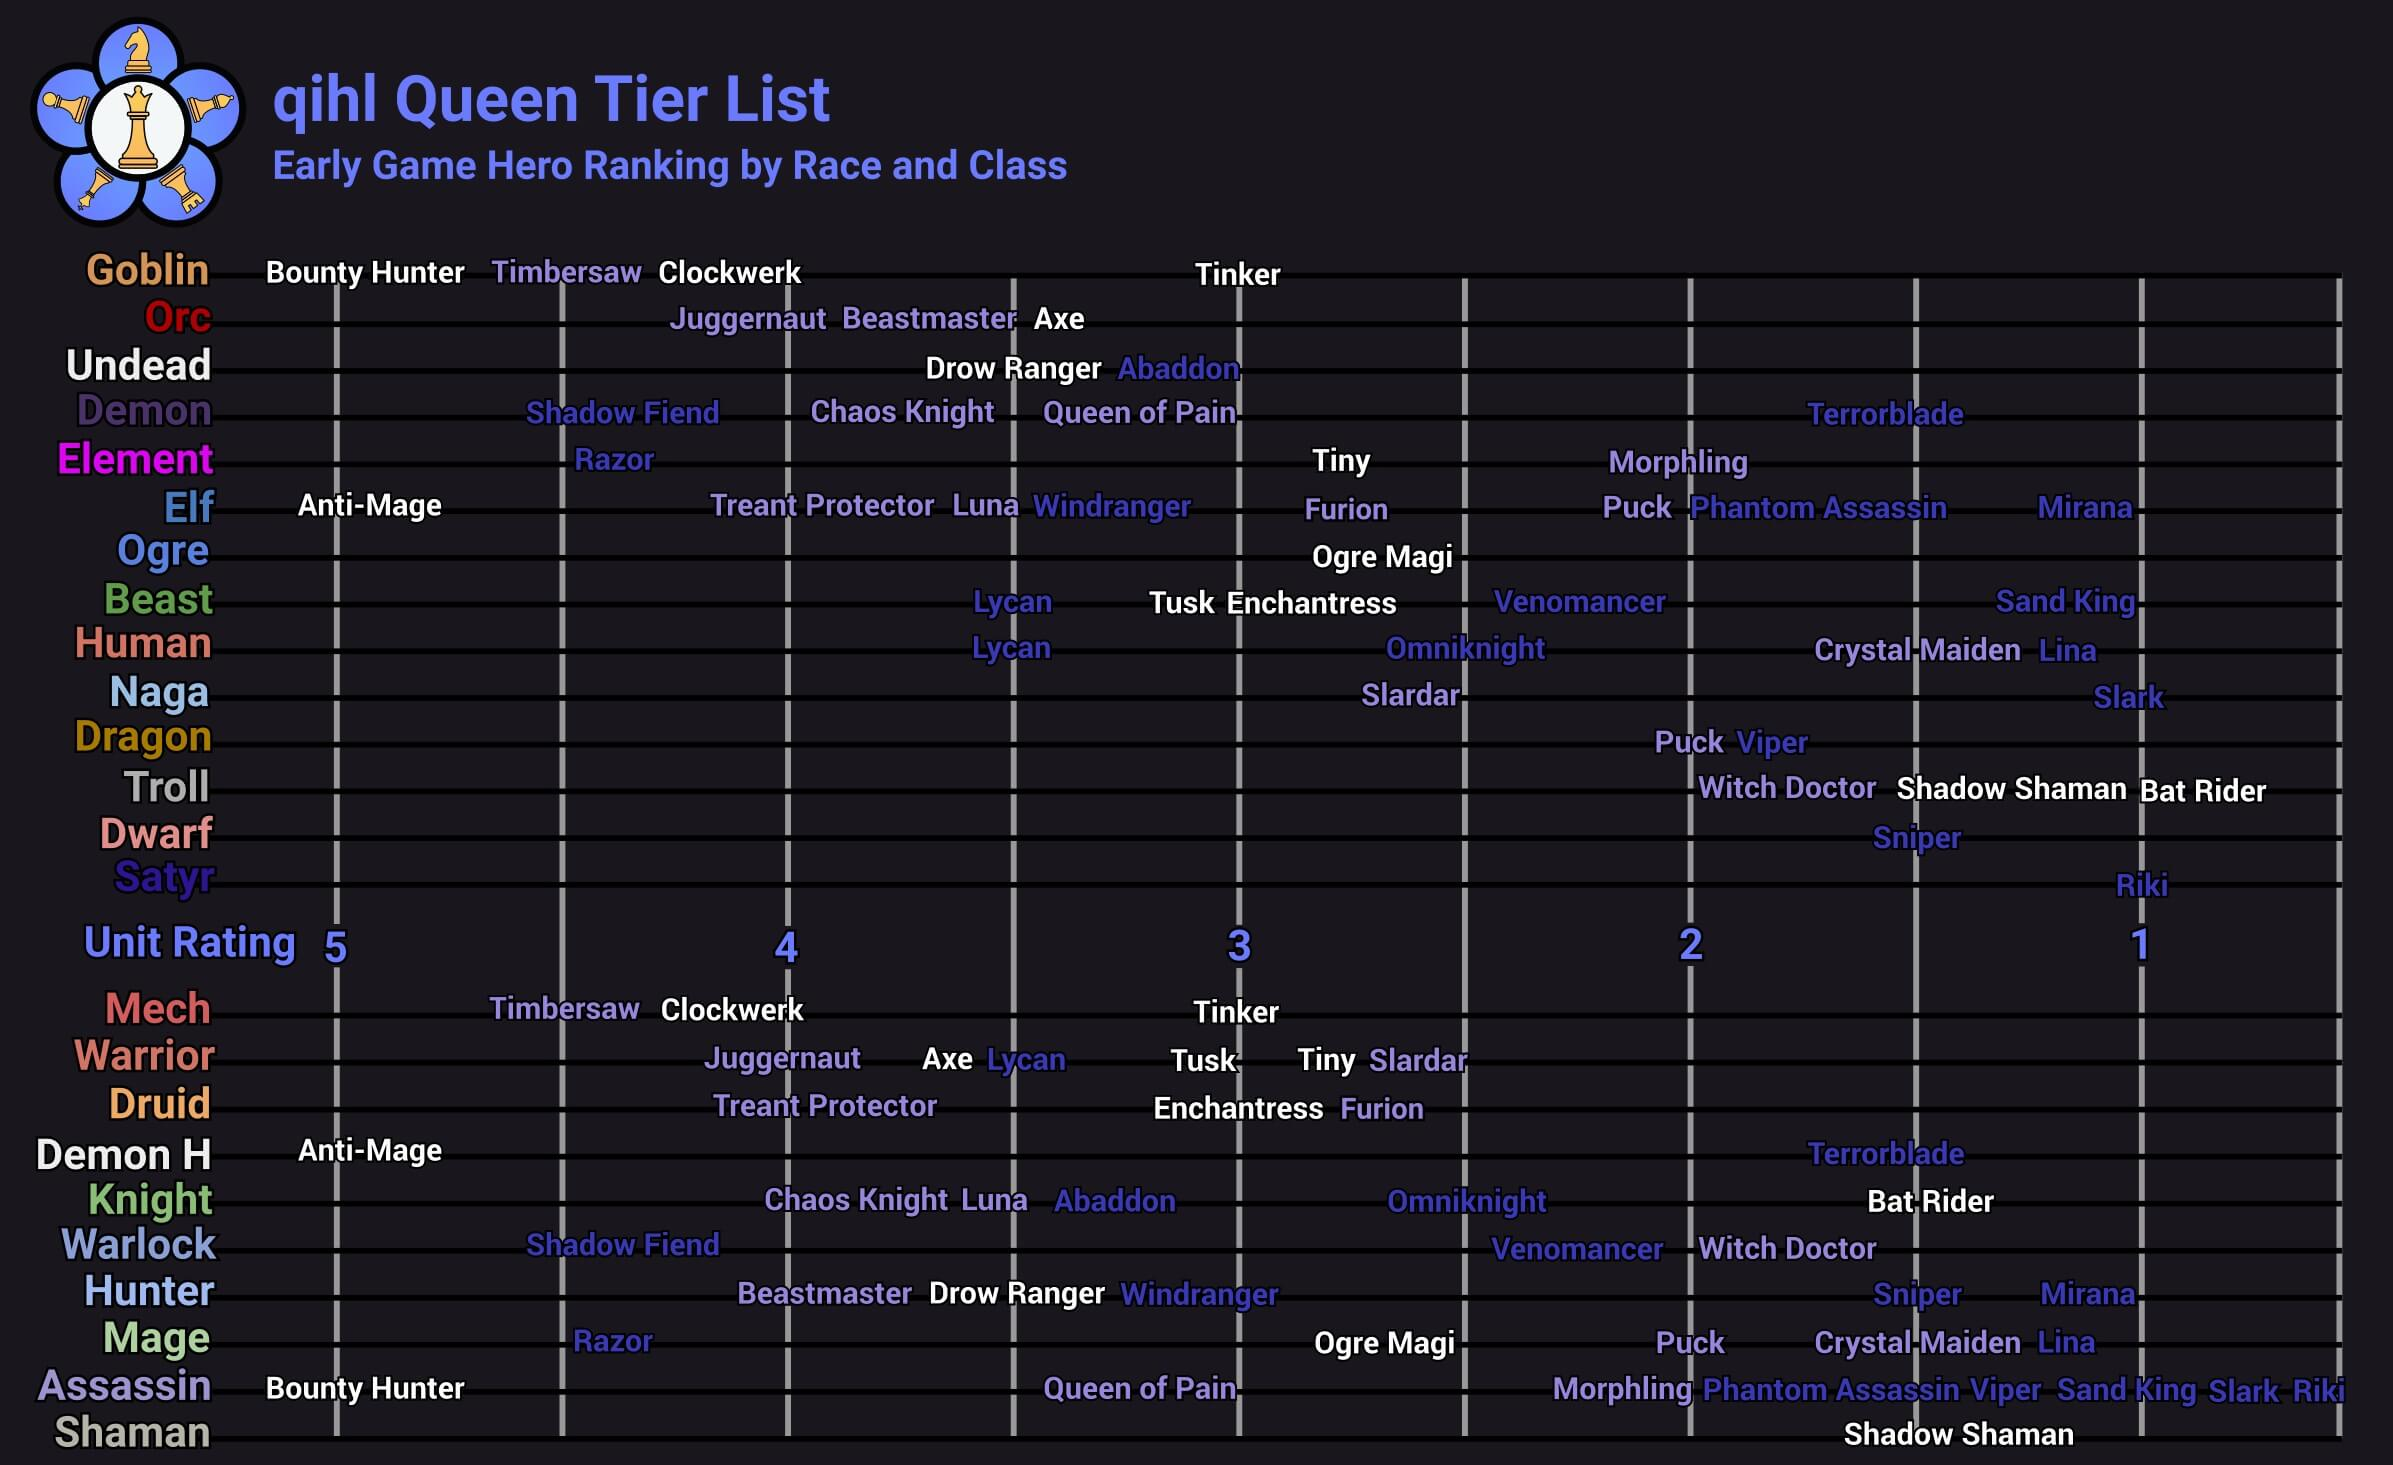 Liquid qihl auto chess queen tier list early game rank species and classes distribution - March 2019